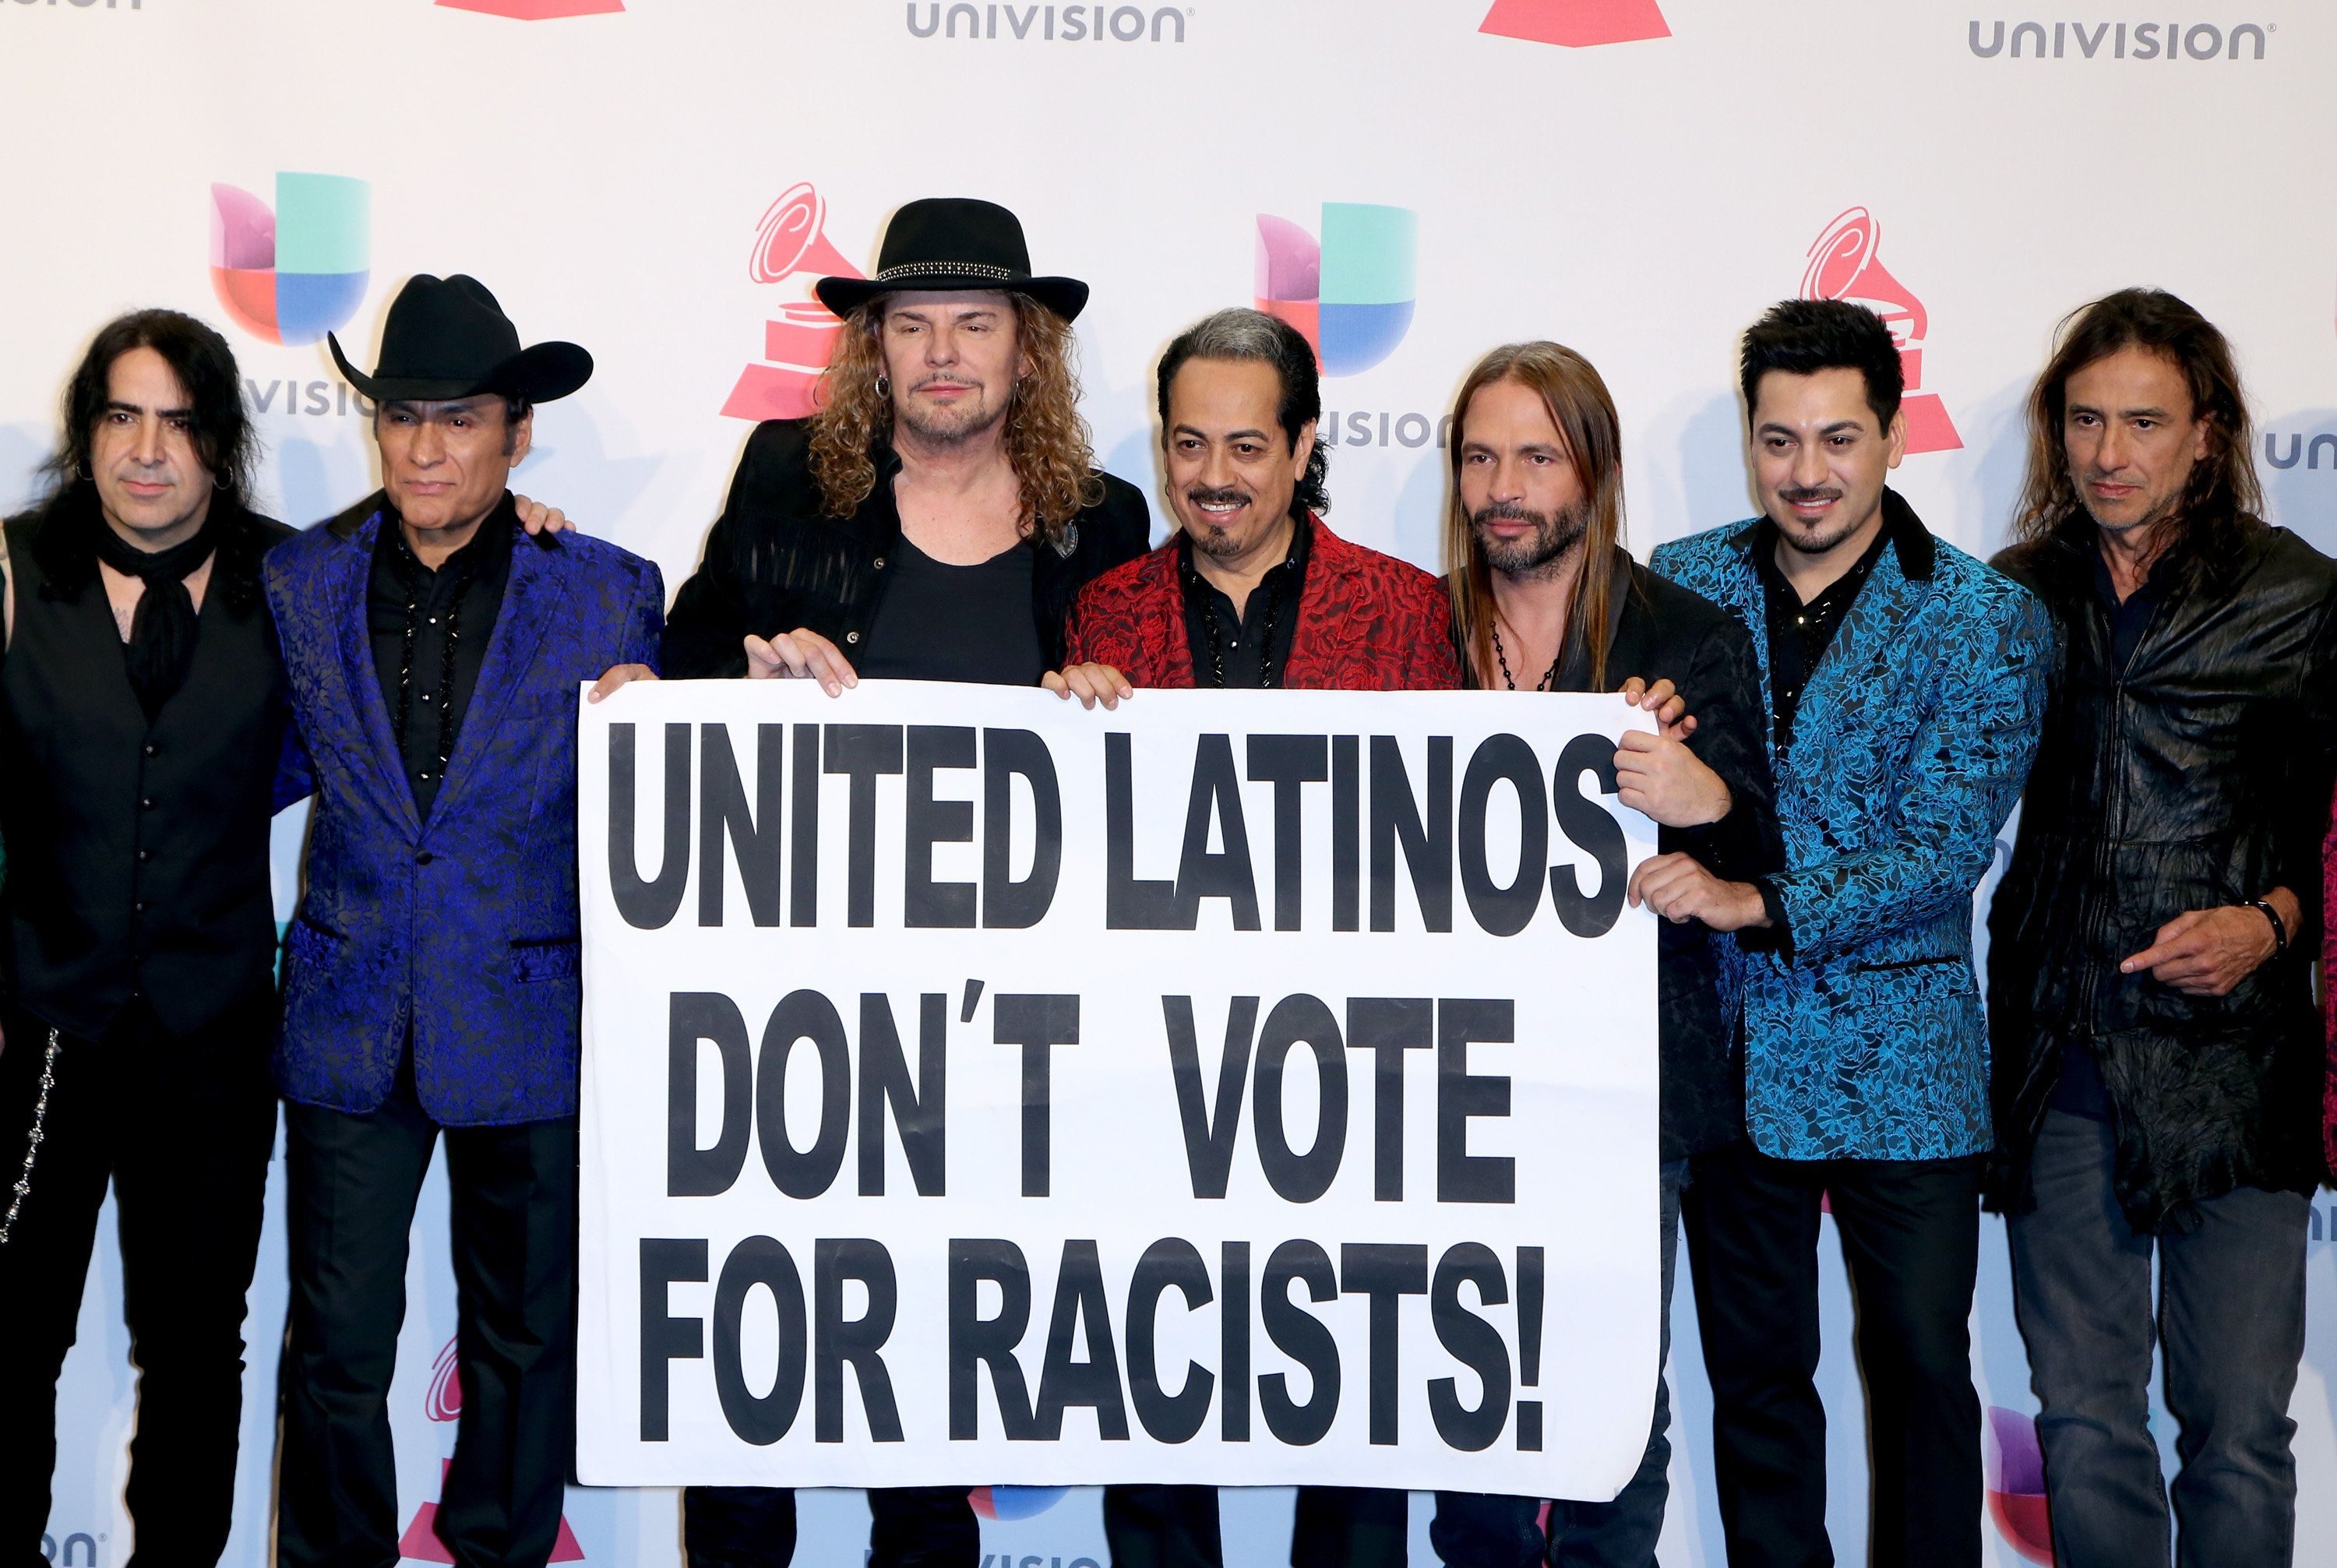 LAS VEGAS, NV - NOVEMBER 19:  Members of the music groups Mana and Los Tigres Del Norte hold up a sign as they pose in the press room during the 16th Latin GRAMMY Awards at the MGM Grand Garden Arena on November 19, 2015 in Las Vegas, Nevada.  (Photo by Gabe Ginsberg/WireImage)